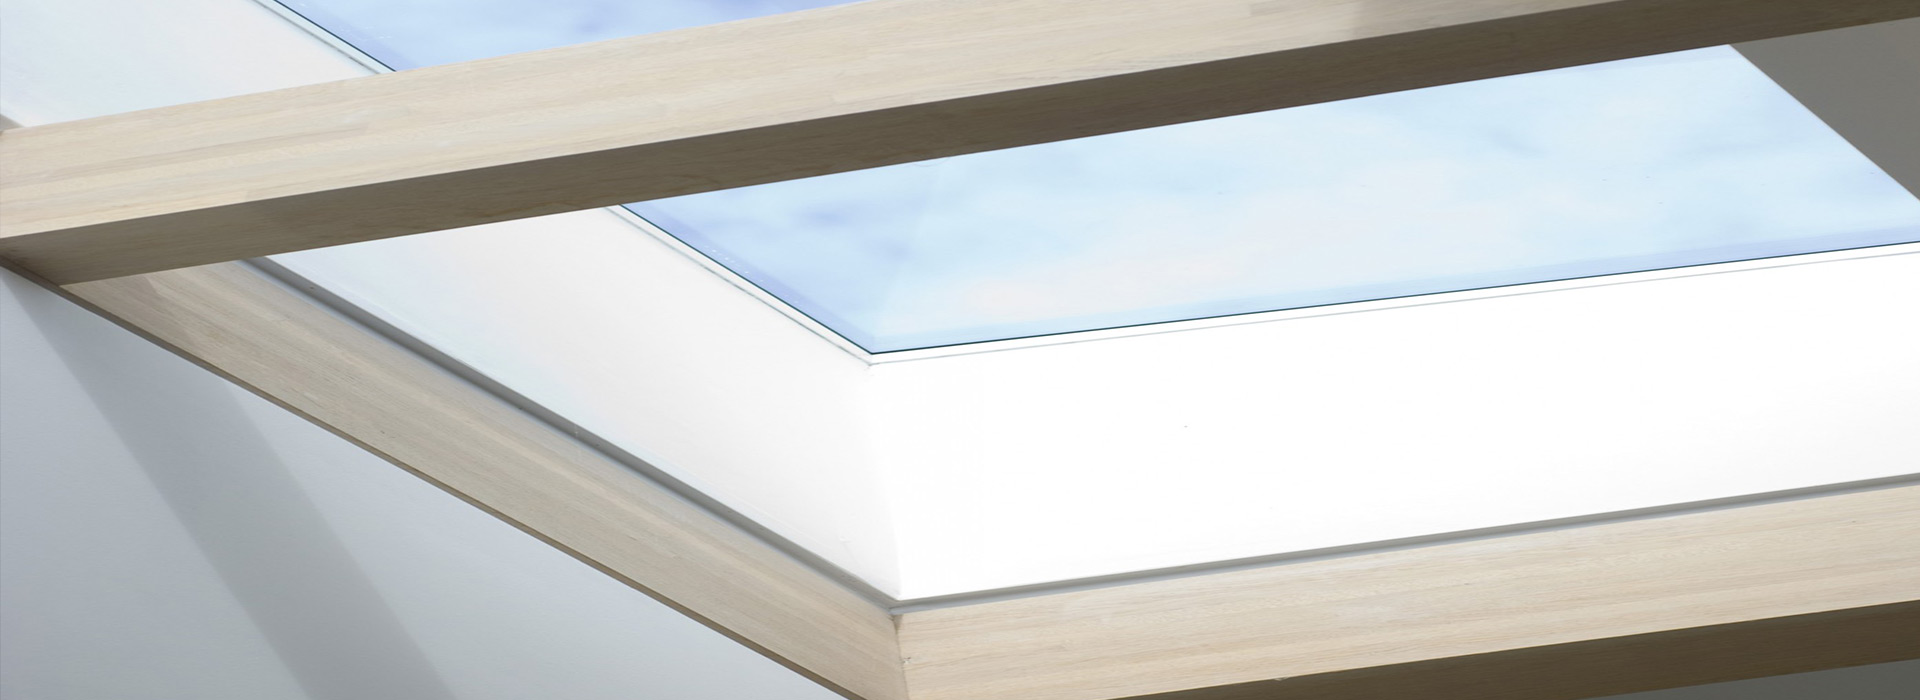 Roof light with oak beams